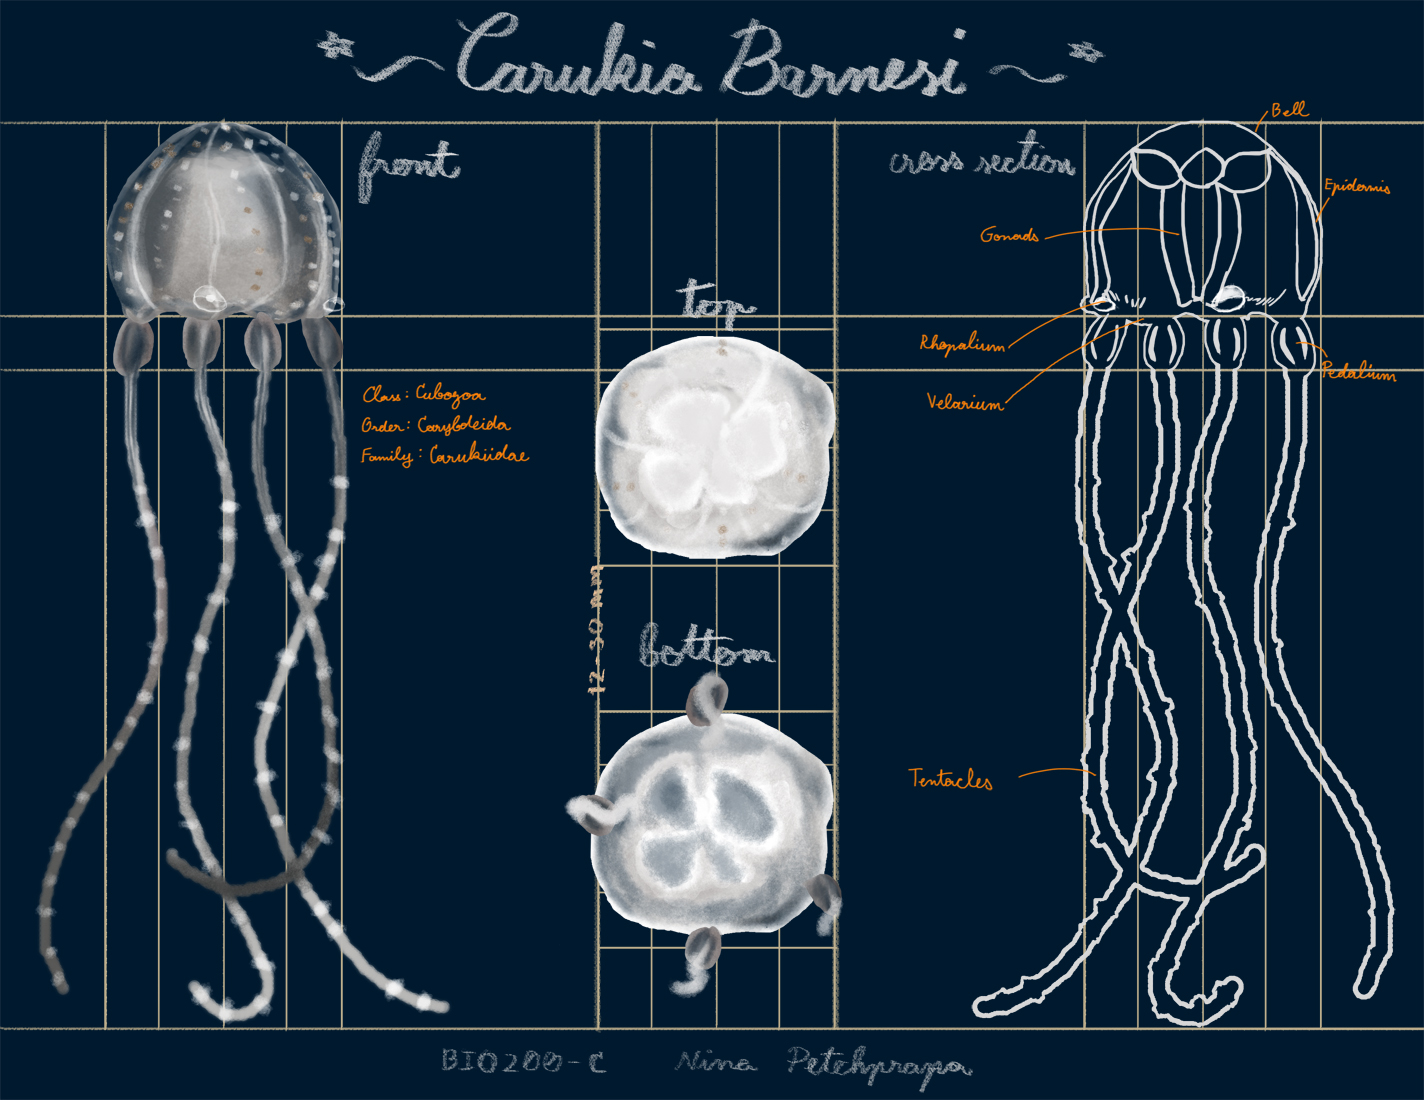 Diagram - Carukia Barnesi